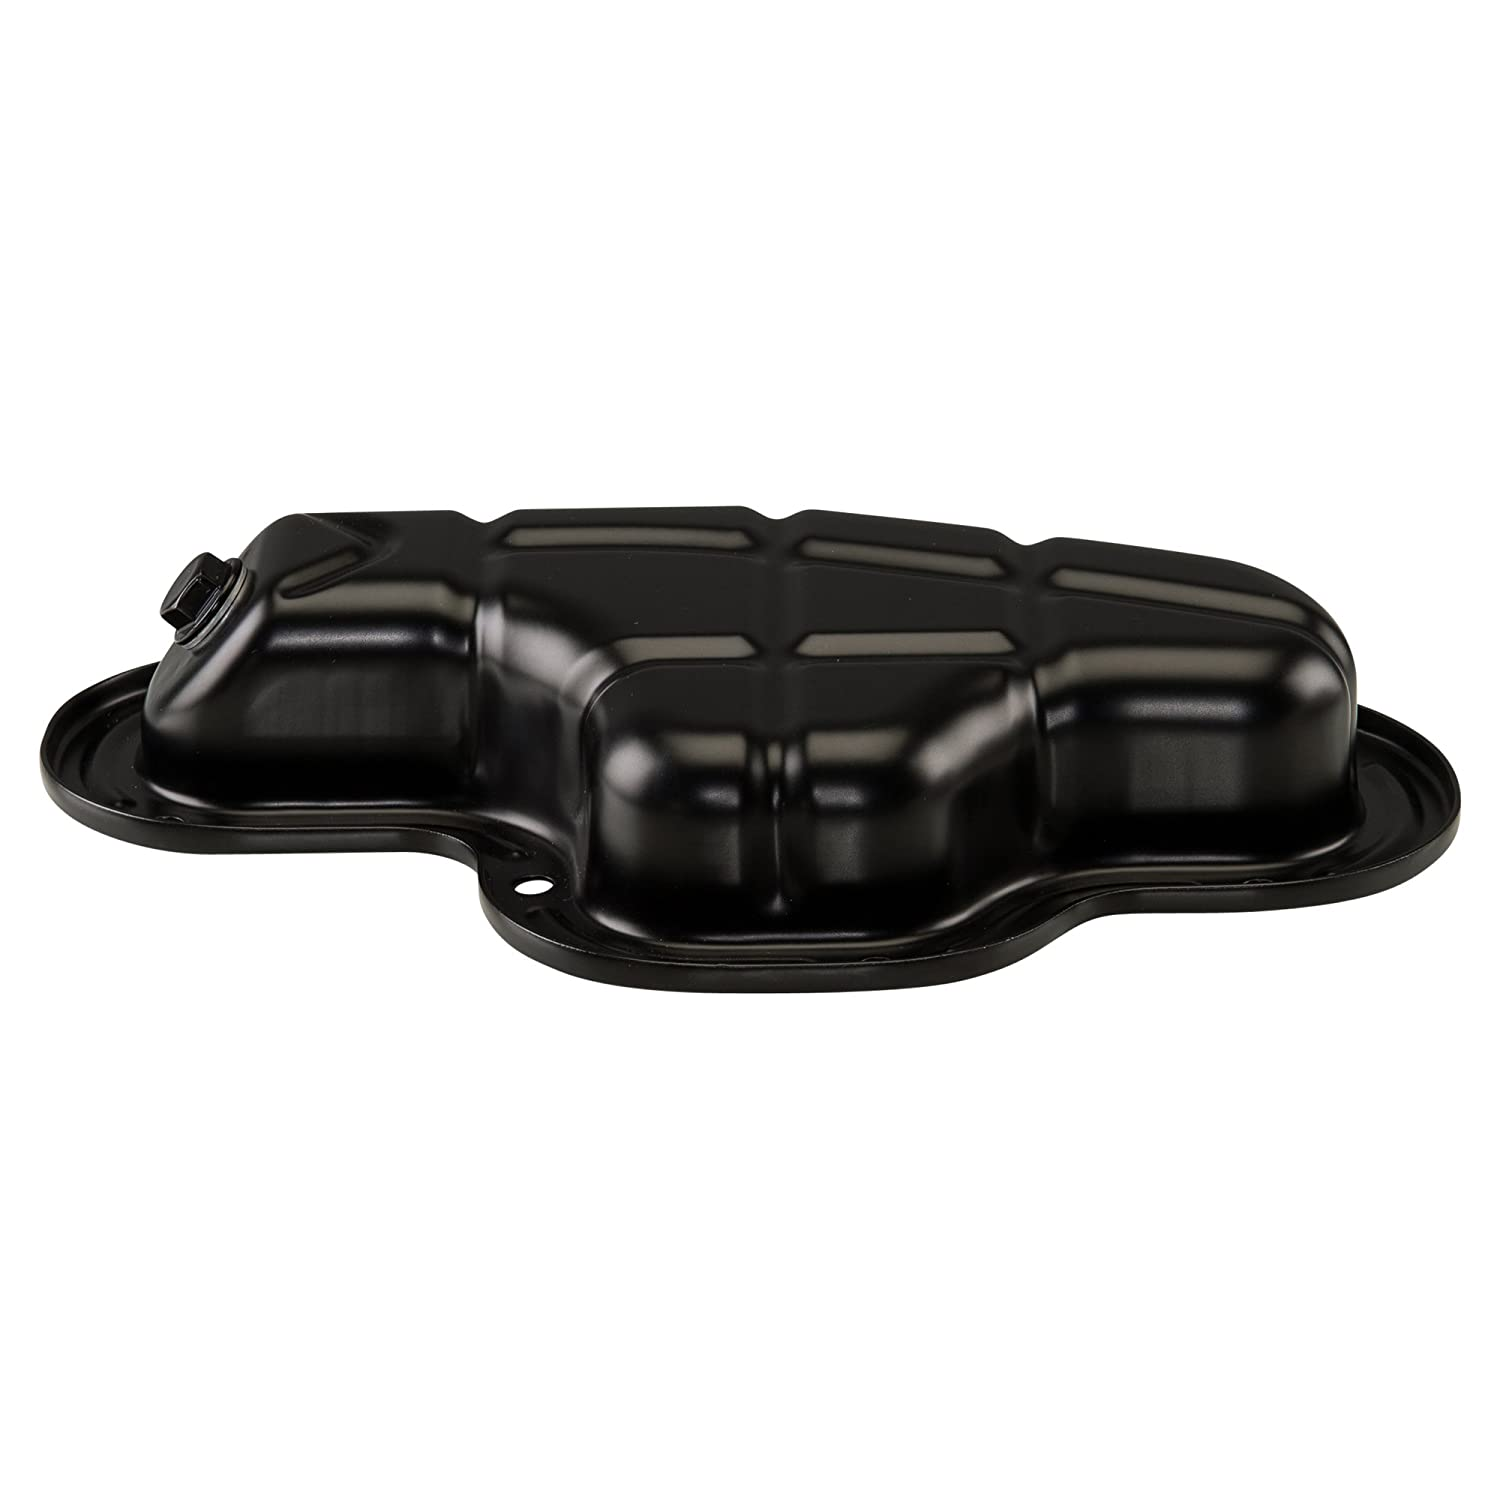 11114-4W001 264-524 111144W001 111104W010 Engine Oil Pan for 2001-2004 Nissan Pathfinder Infiniti QX4 3.5L fits 11110-4W010